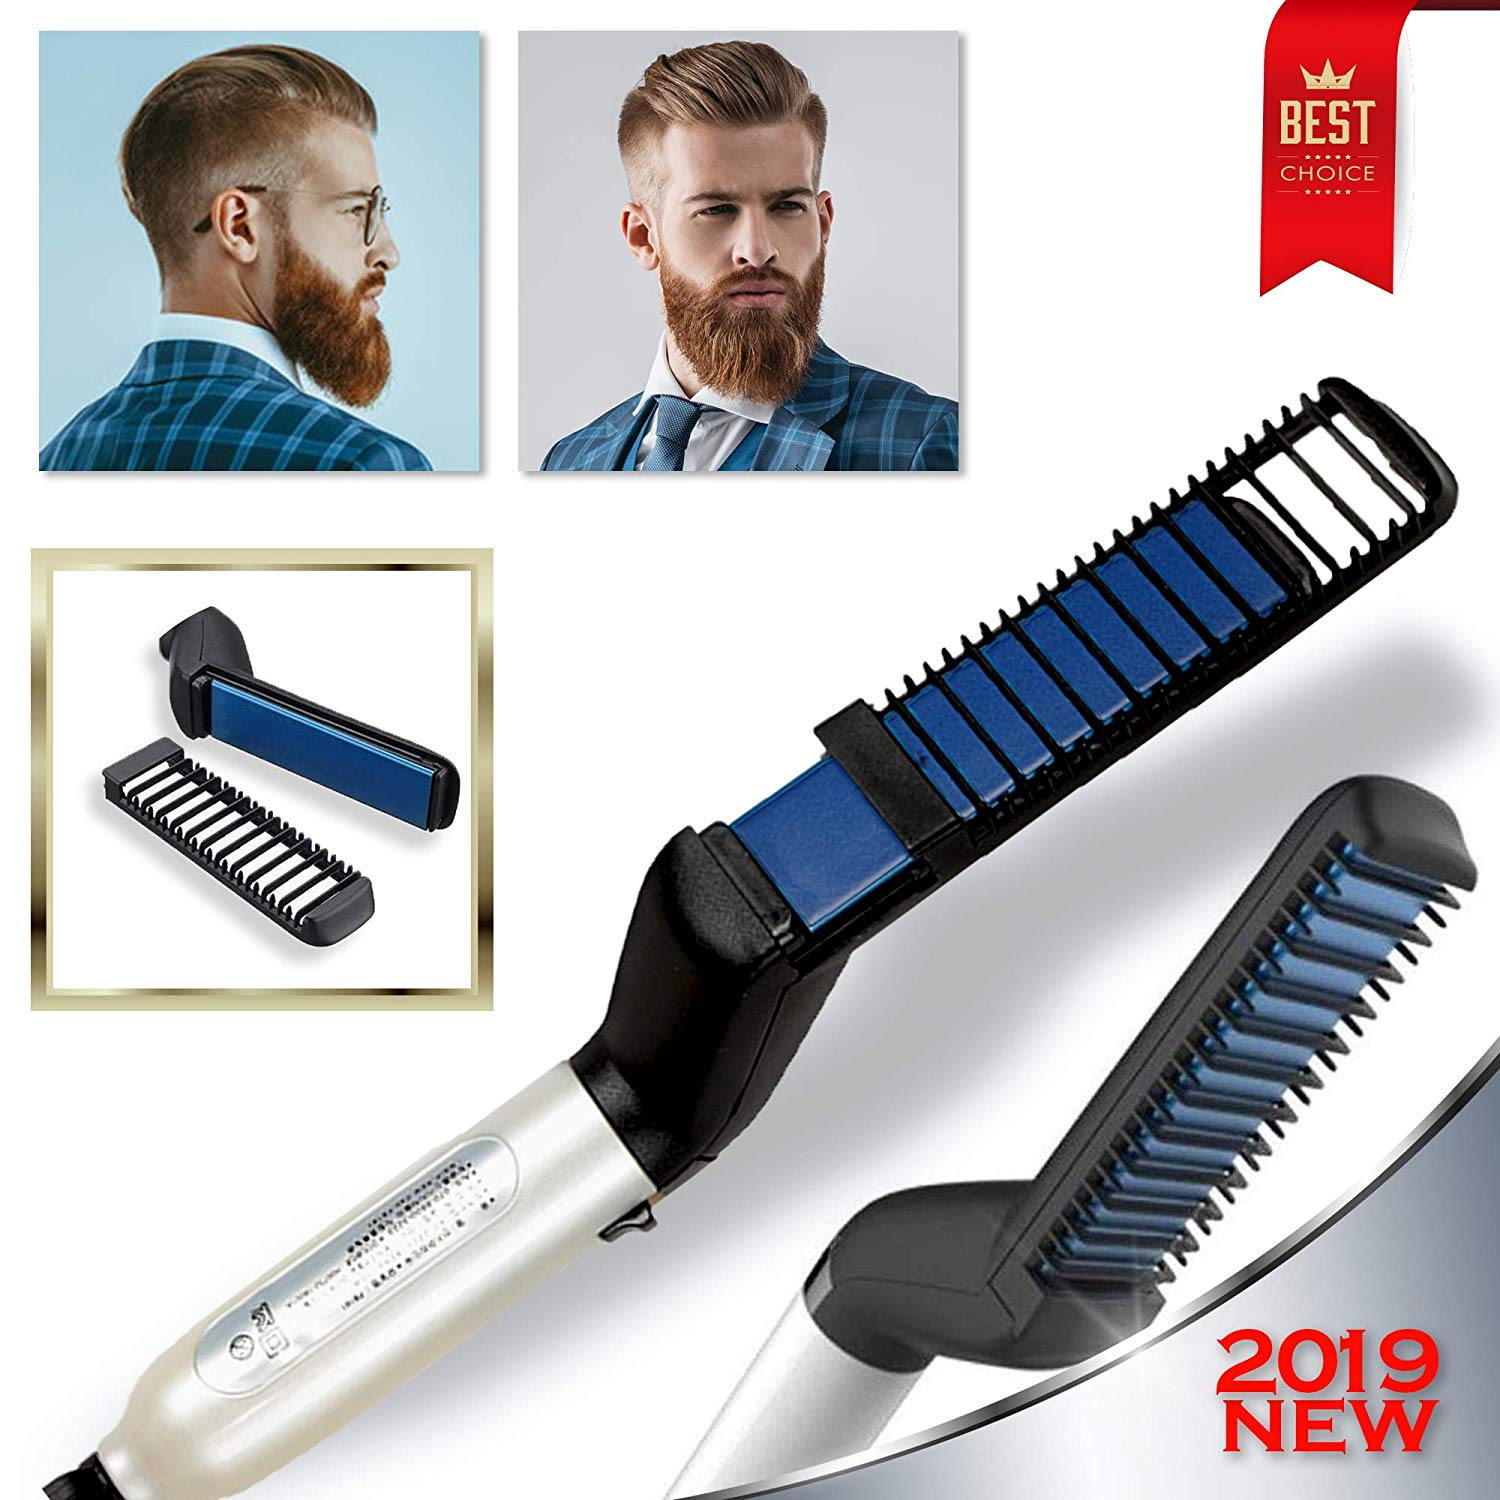 Cutie Academy Ionic Beard Straightening Comb - Detangling & Volumizing & Styling Beard Straightening Brush for Men